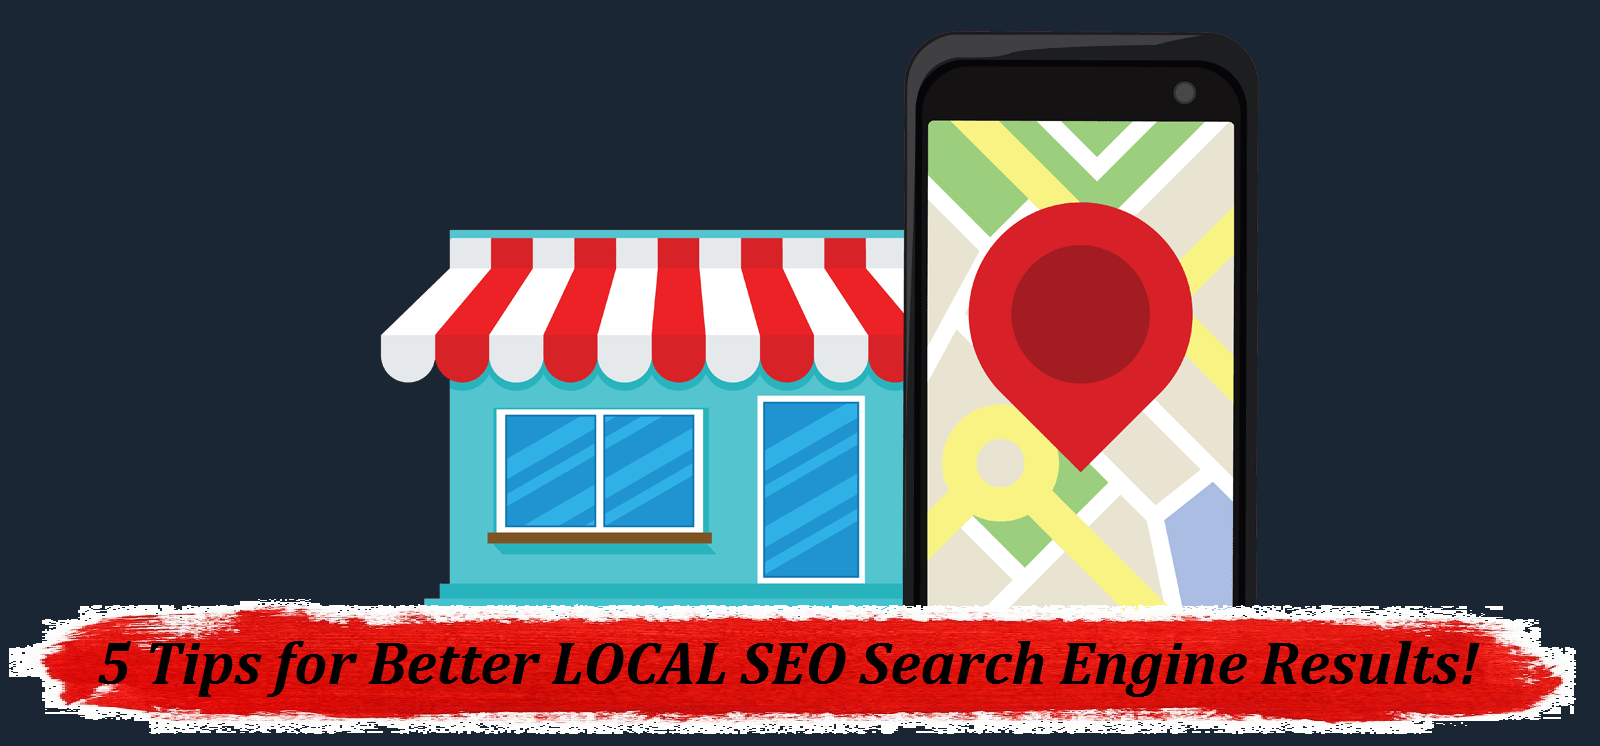 Local SEO Ranking Factors 2019